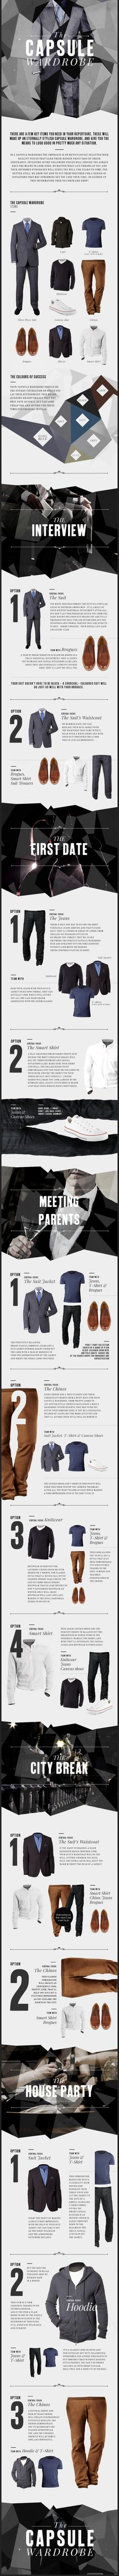 Men's Essentials:  How to build a Time Capsule Wardrobe.  These items will give you the means to look good in pretty much any situation,  No matter what life throws at you. ===> FOLLOW US ON PINTEREST for Style Tips, Men's Basics, Men's Essentials on anything, OUR SALES etc... ~ #VujuWear